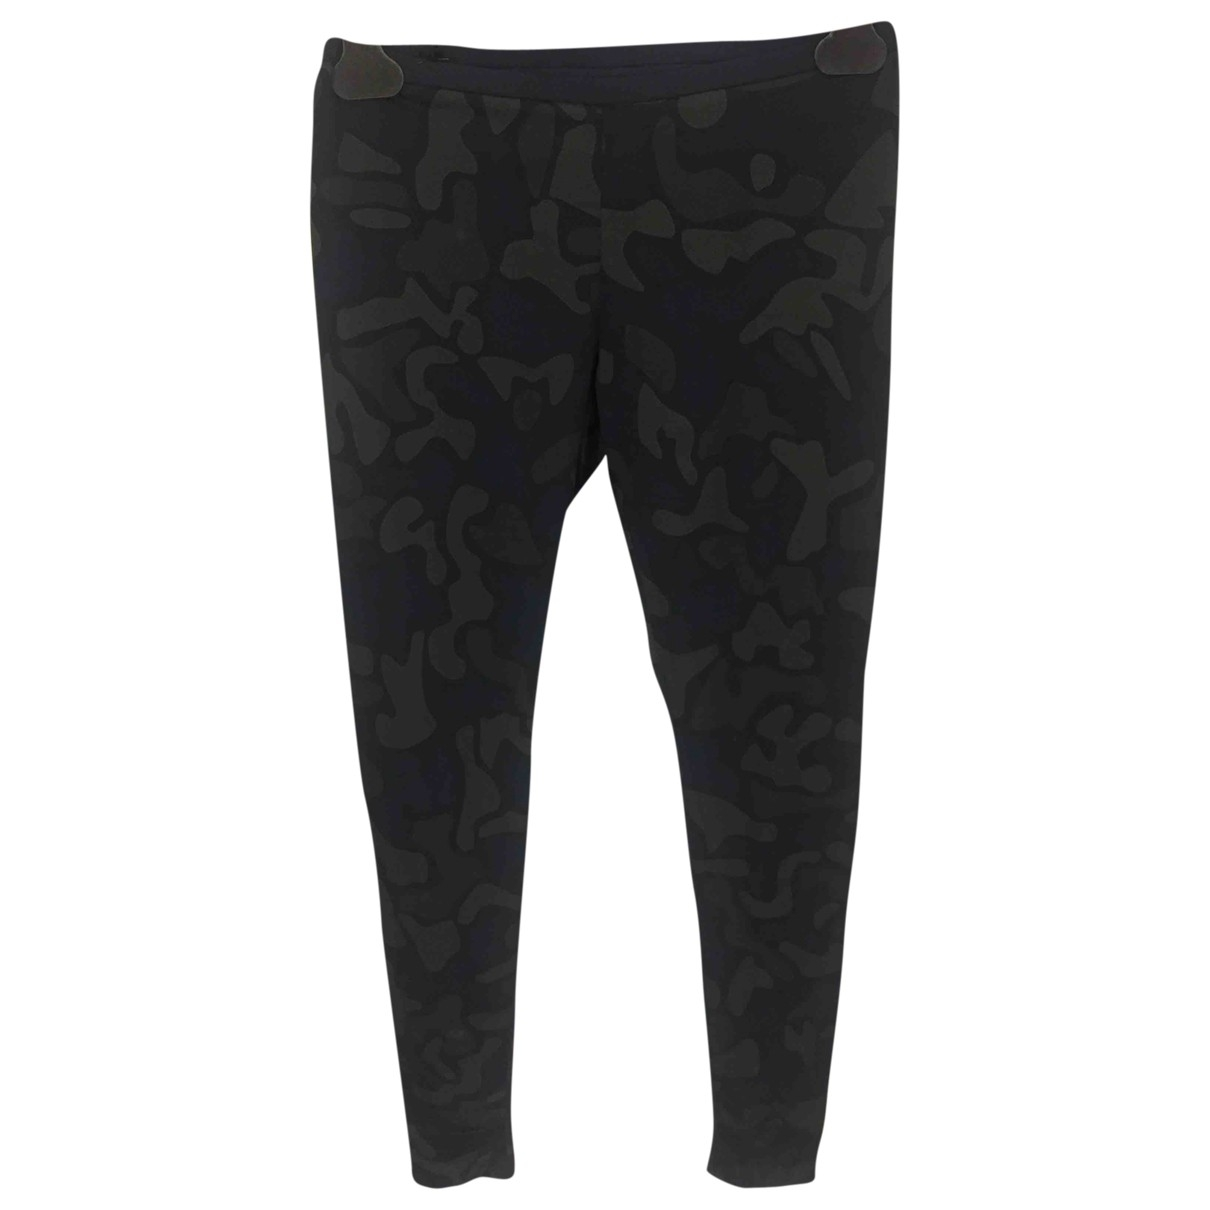 Y-3 \N Cotton Trousers for Women S International